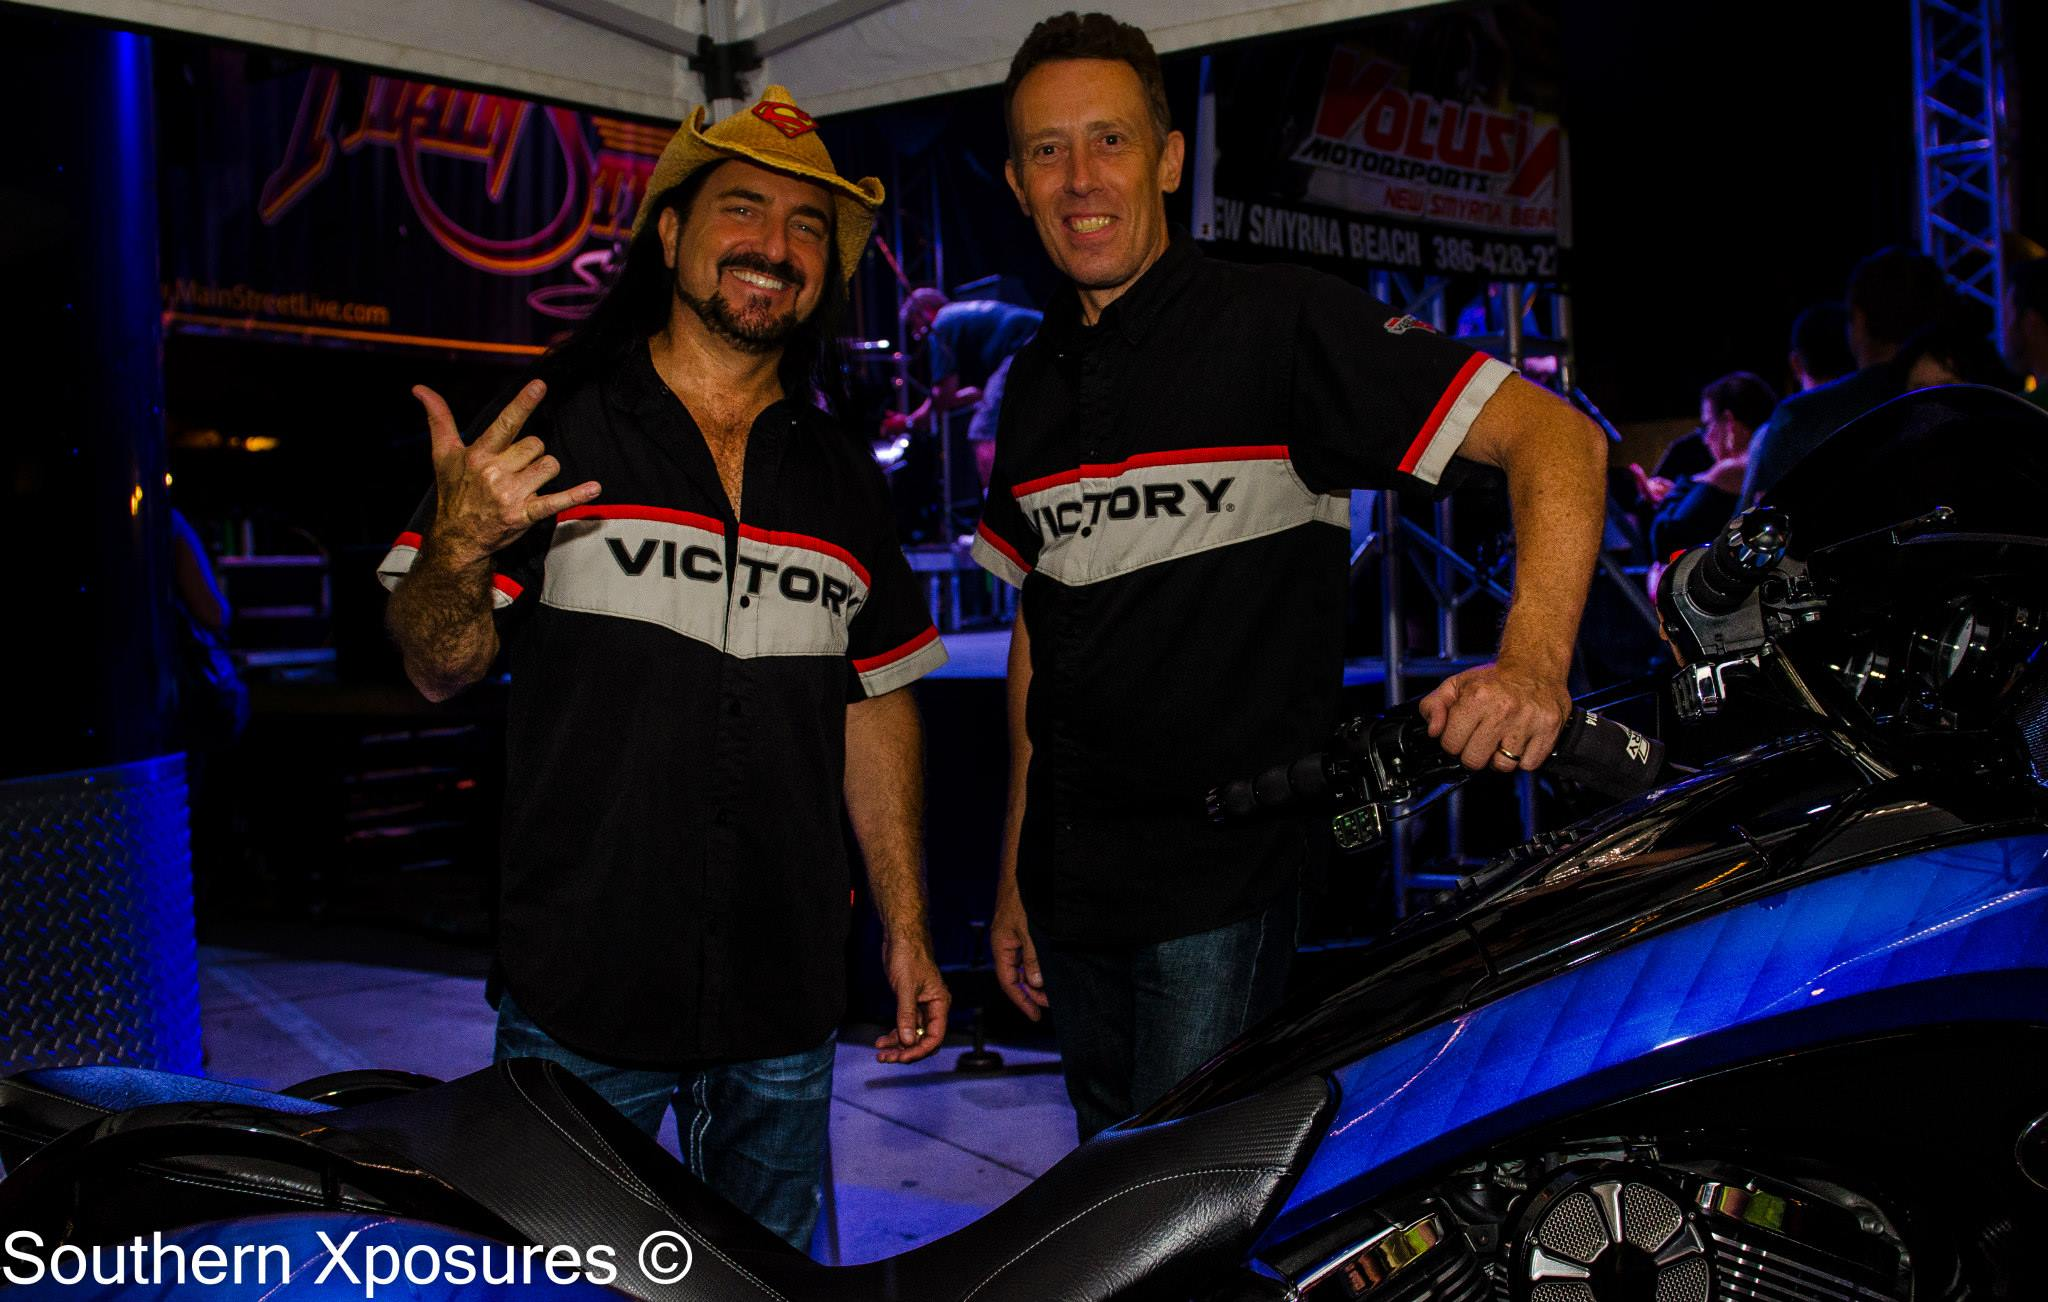 Tony with Andy from Volusia Motorsports